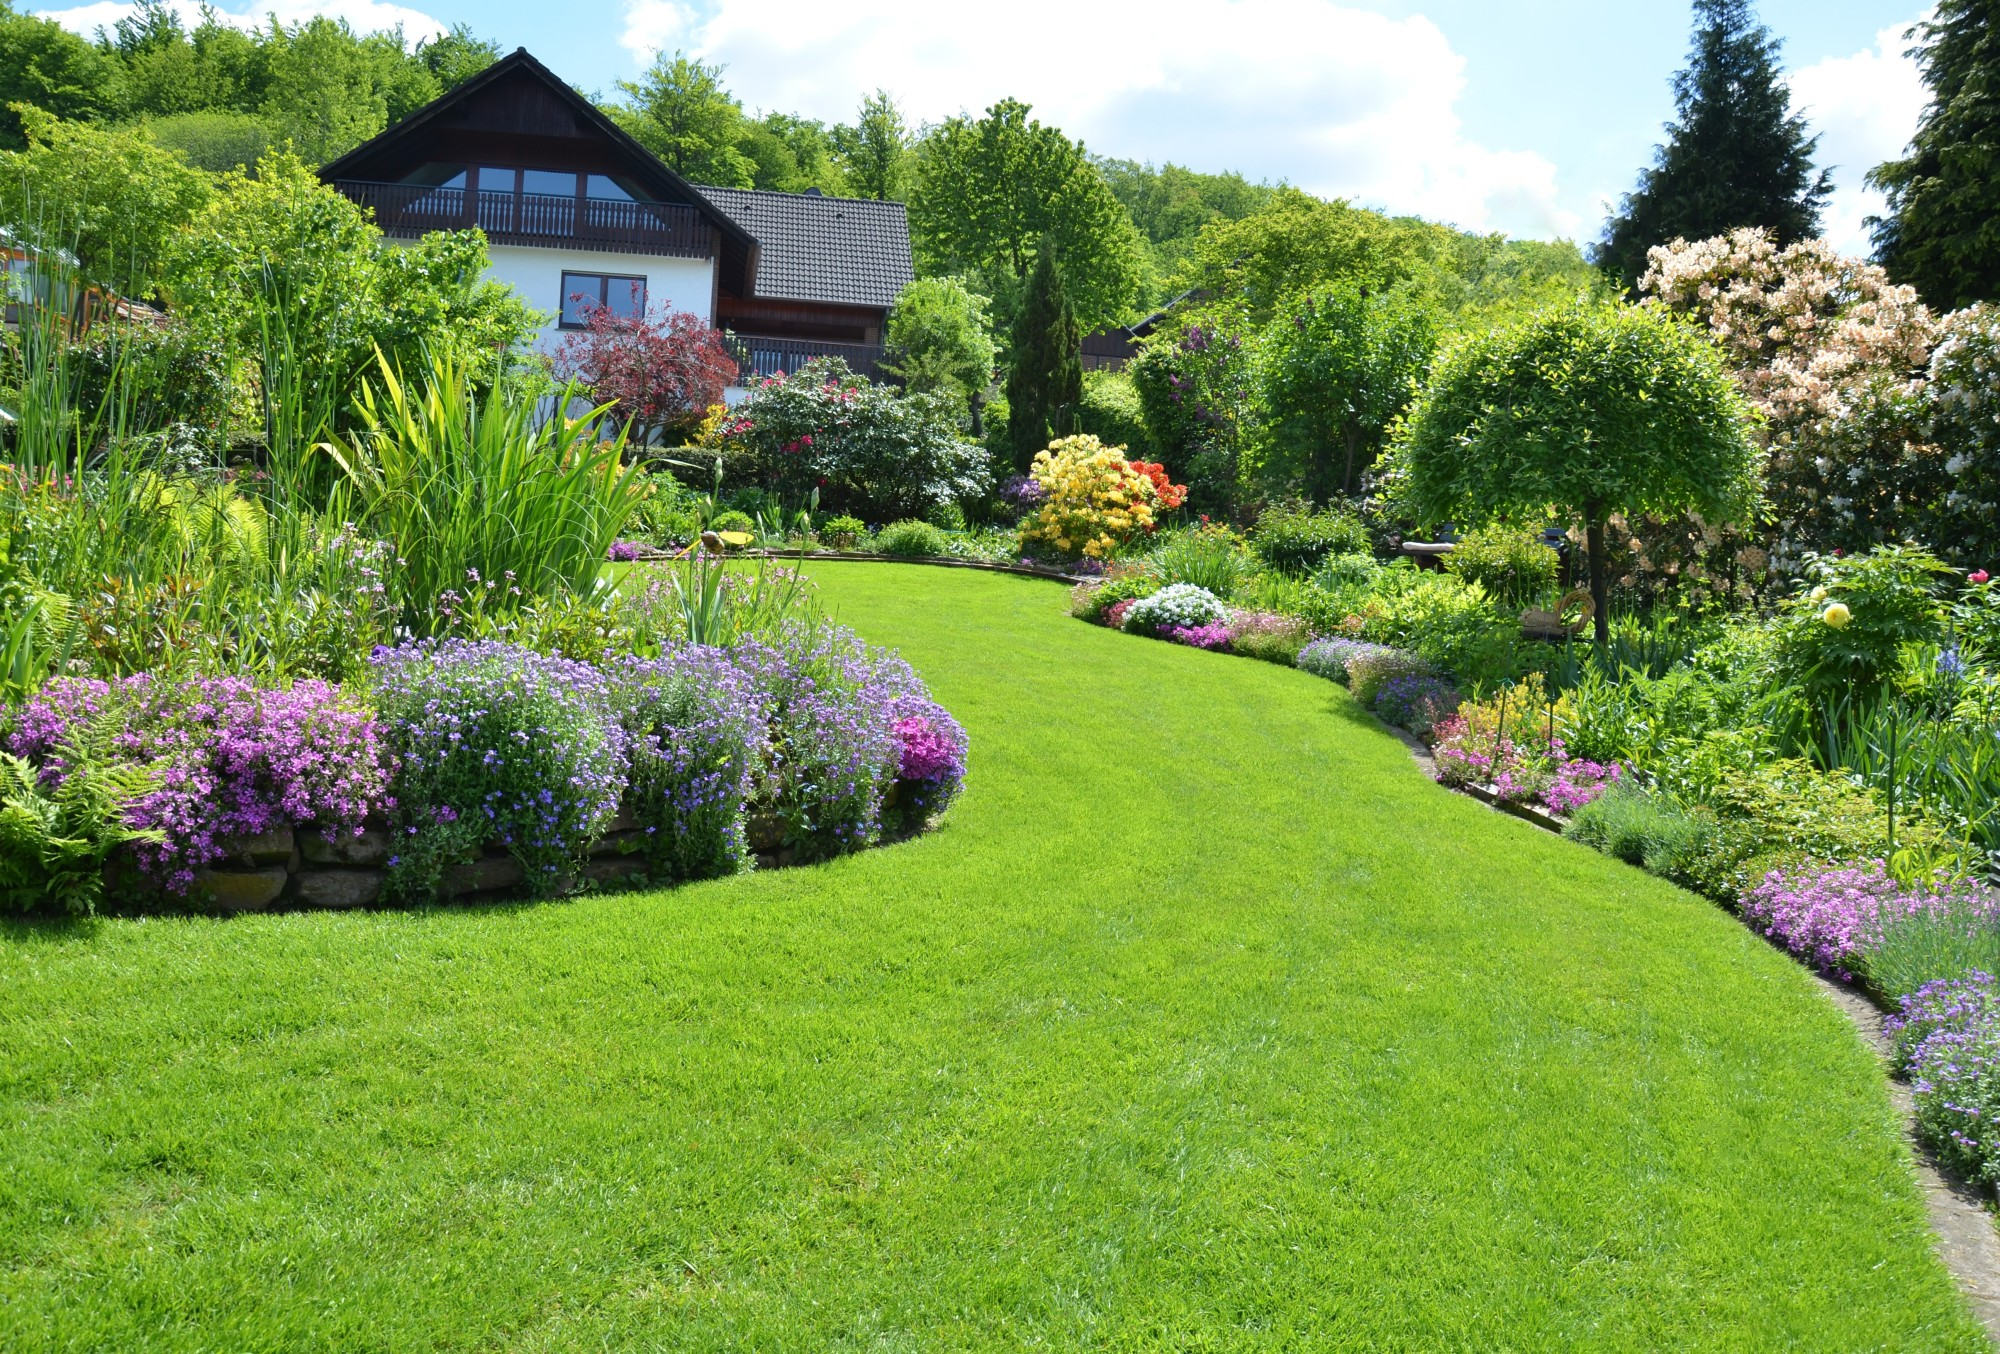 10 Idaho Landscaping Ideas to Add Major Curb Appeal